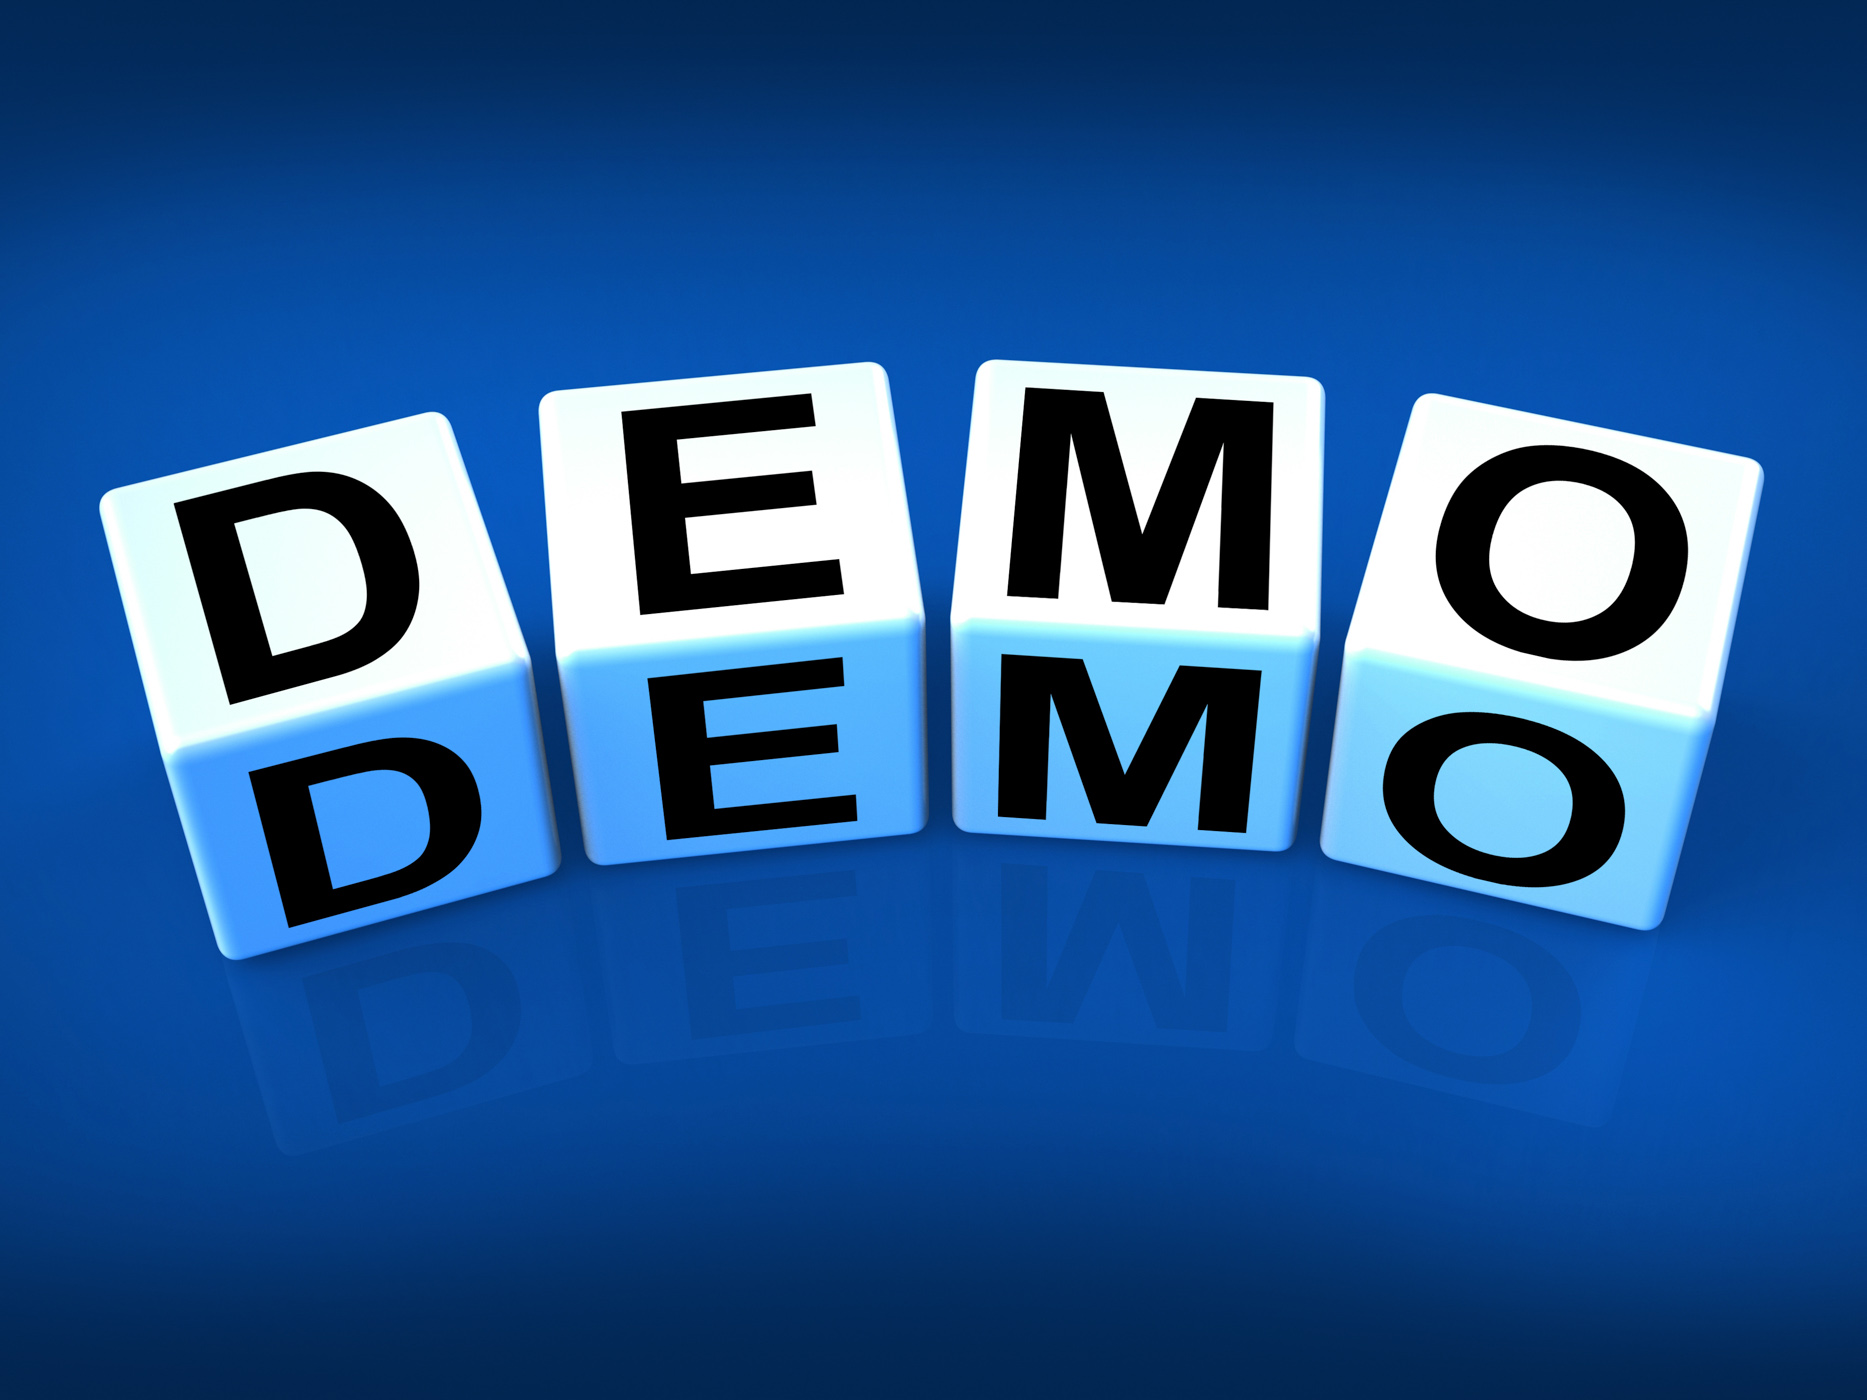 Demo blocks indicate demonstration test or try-out a version photo